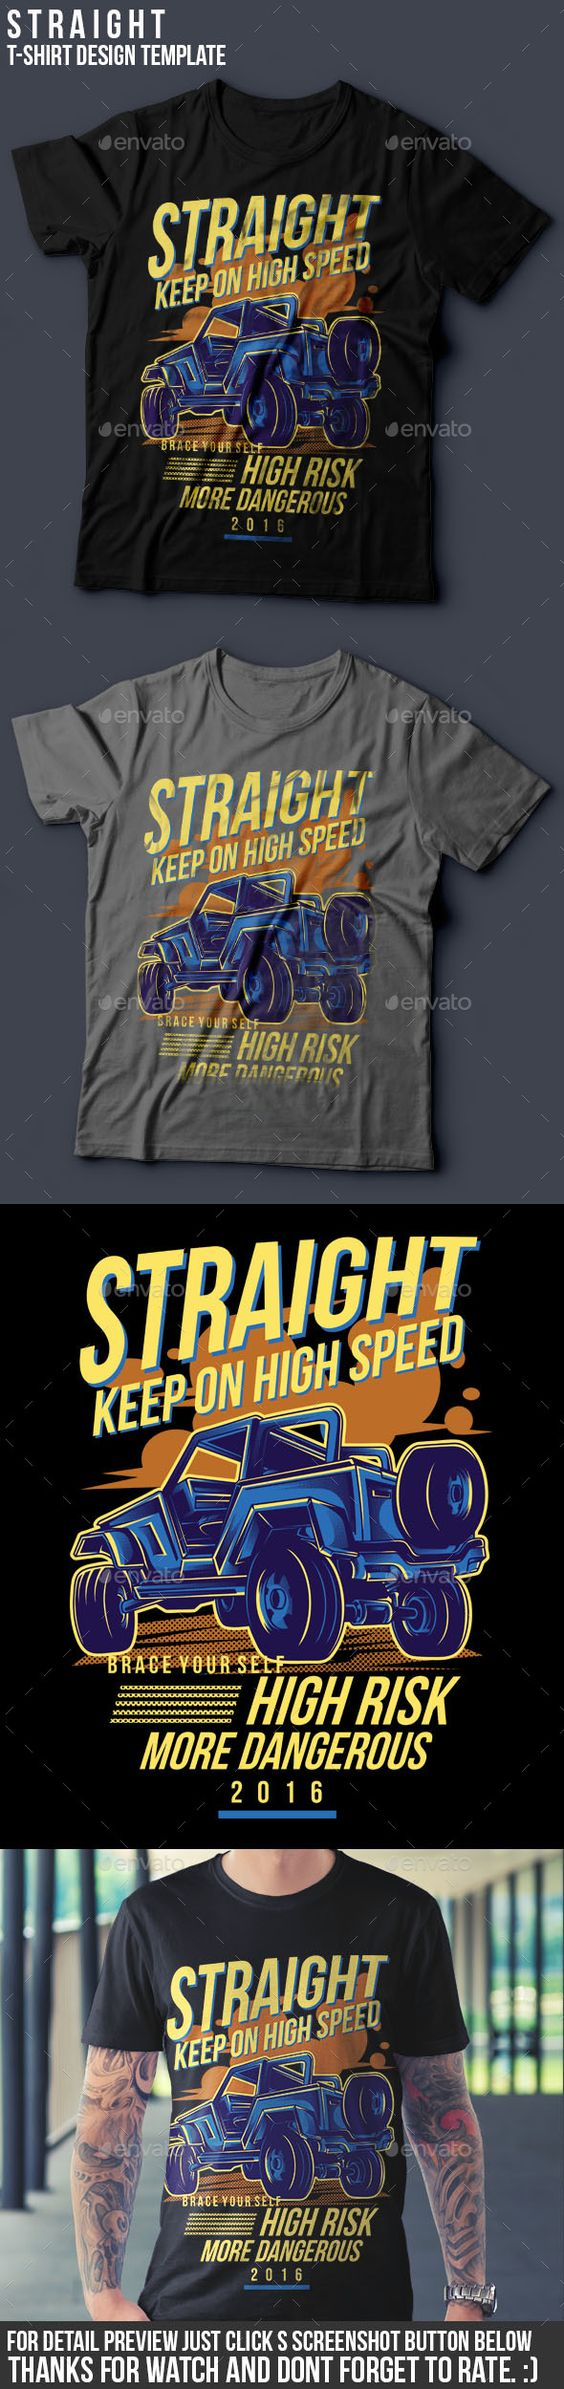 Shirt design eps - Buy Straight T Shirt Design By Badsyxn On Graphicriver Vector Resizable Easy To Edit And Change Color File Included Ai Eps Png And Read Me Txt High